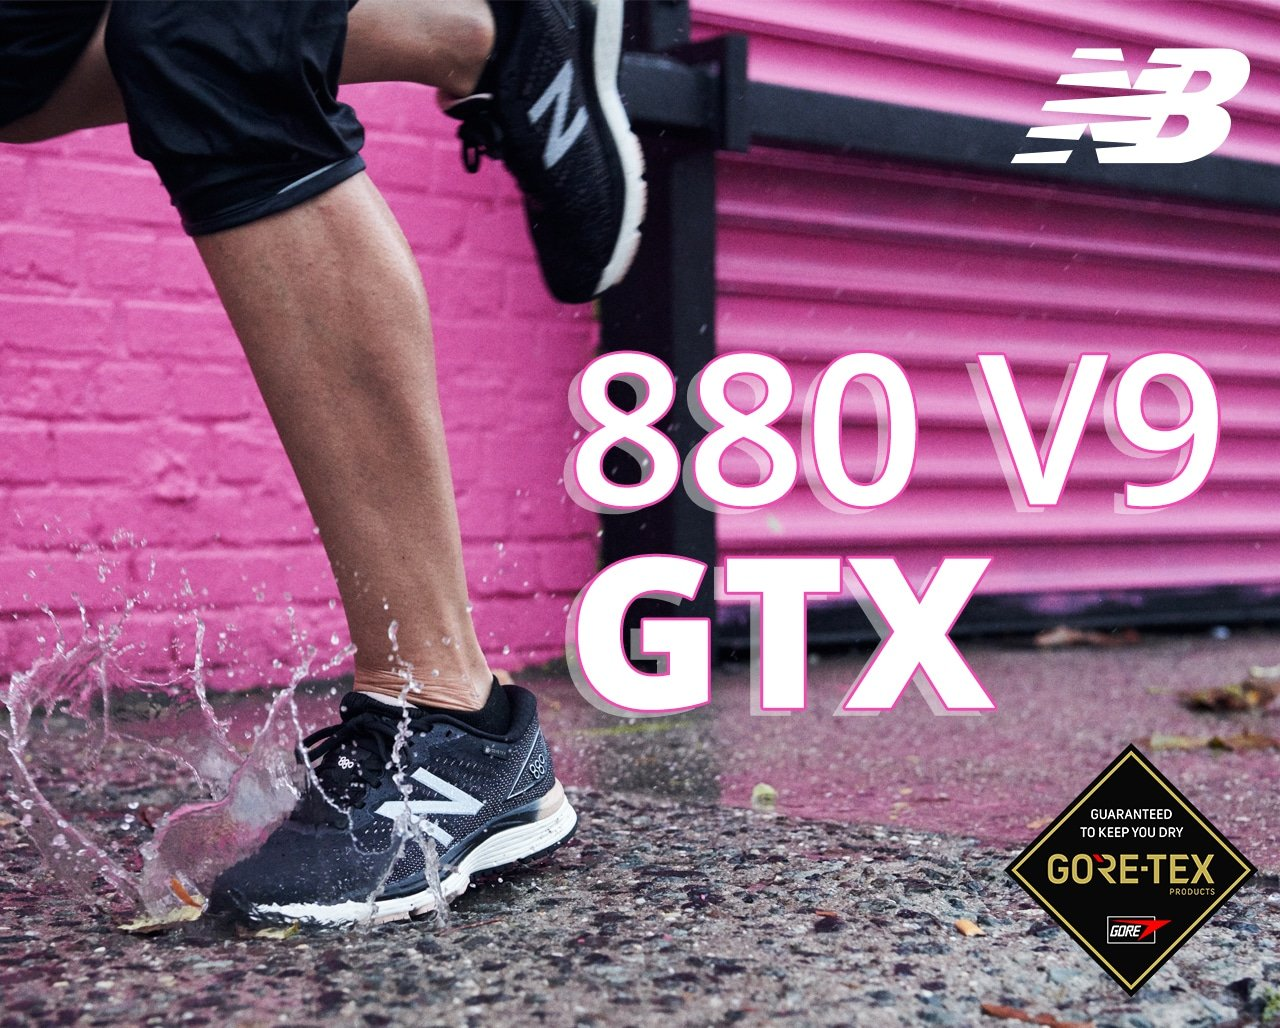 Stay Dry with New Balance 880v9 GTX